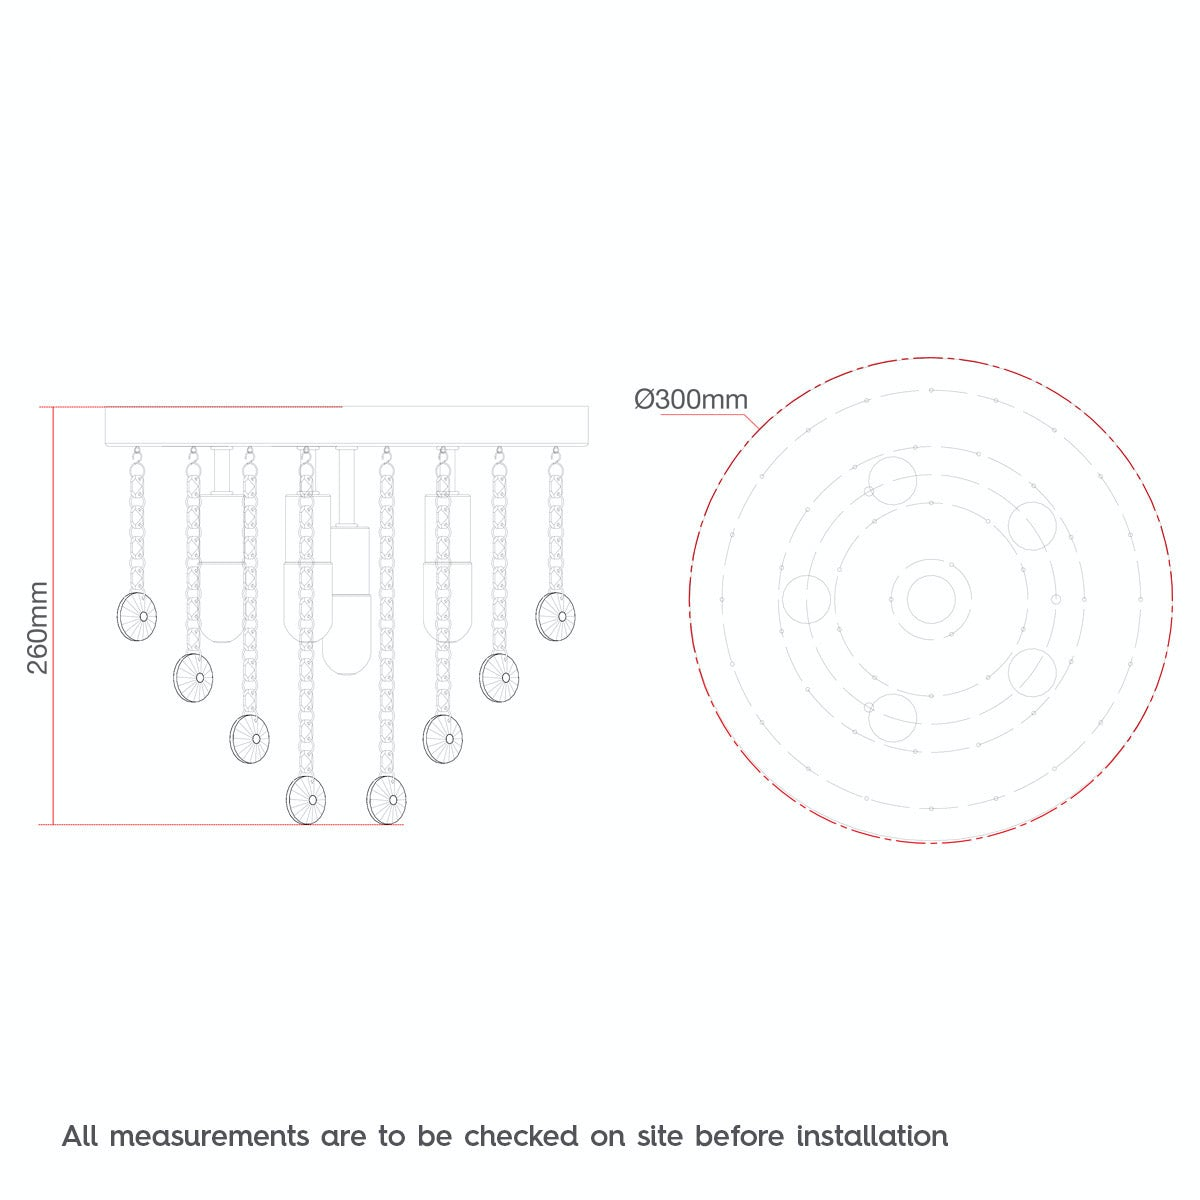 Dimensions for Forum Lenah 330mm flush bathroom ceiling light